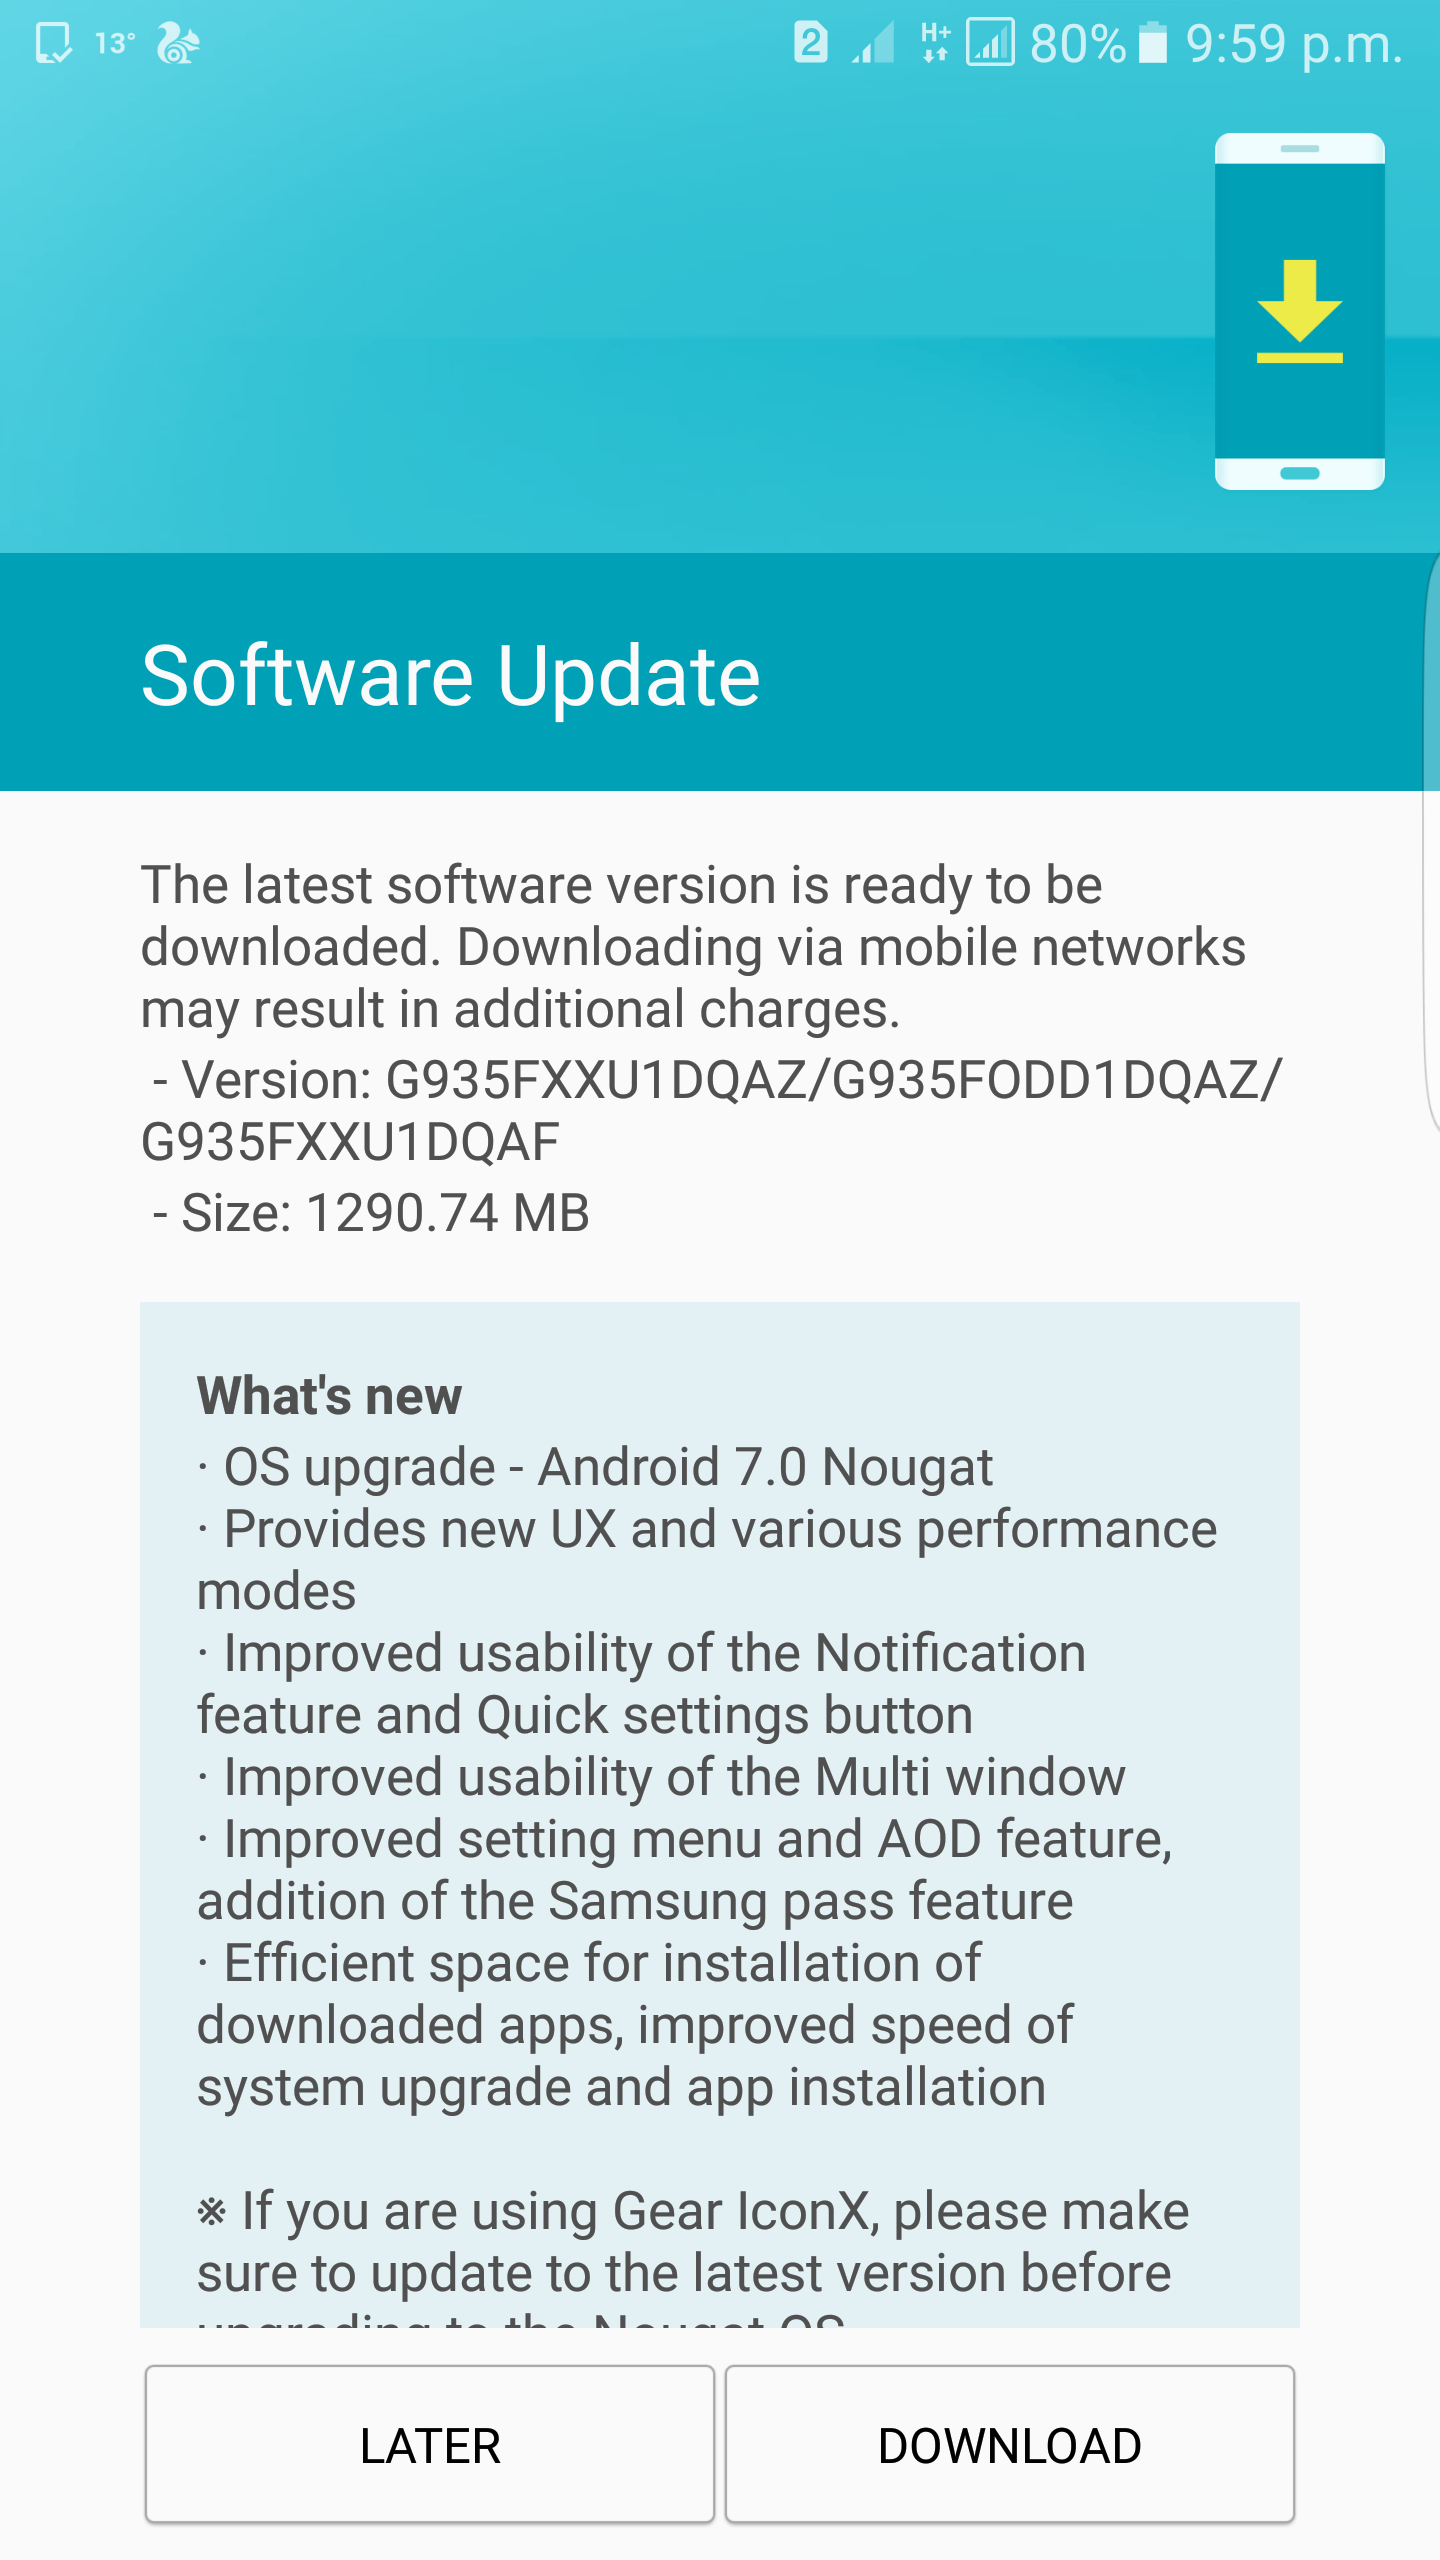 Galaxy S7 Edge Android 7.0 Nougat update